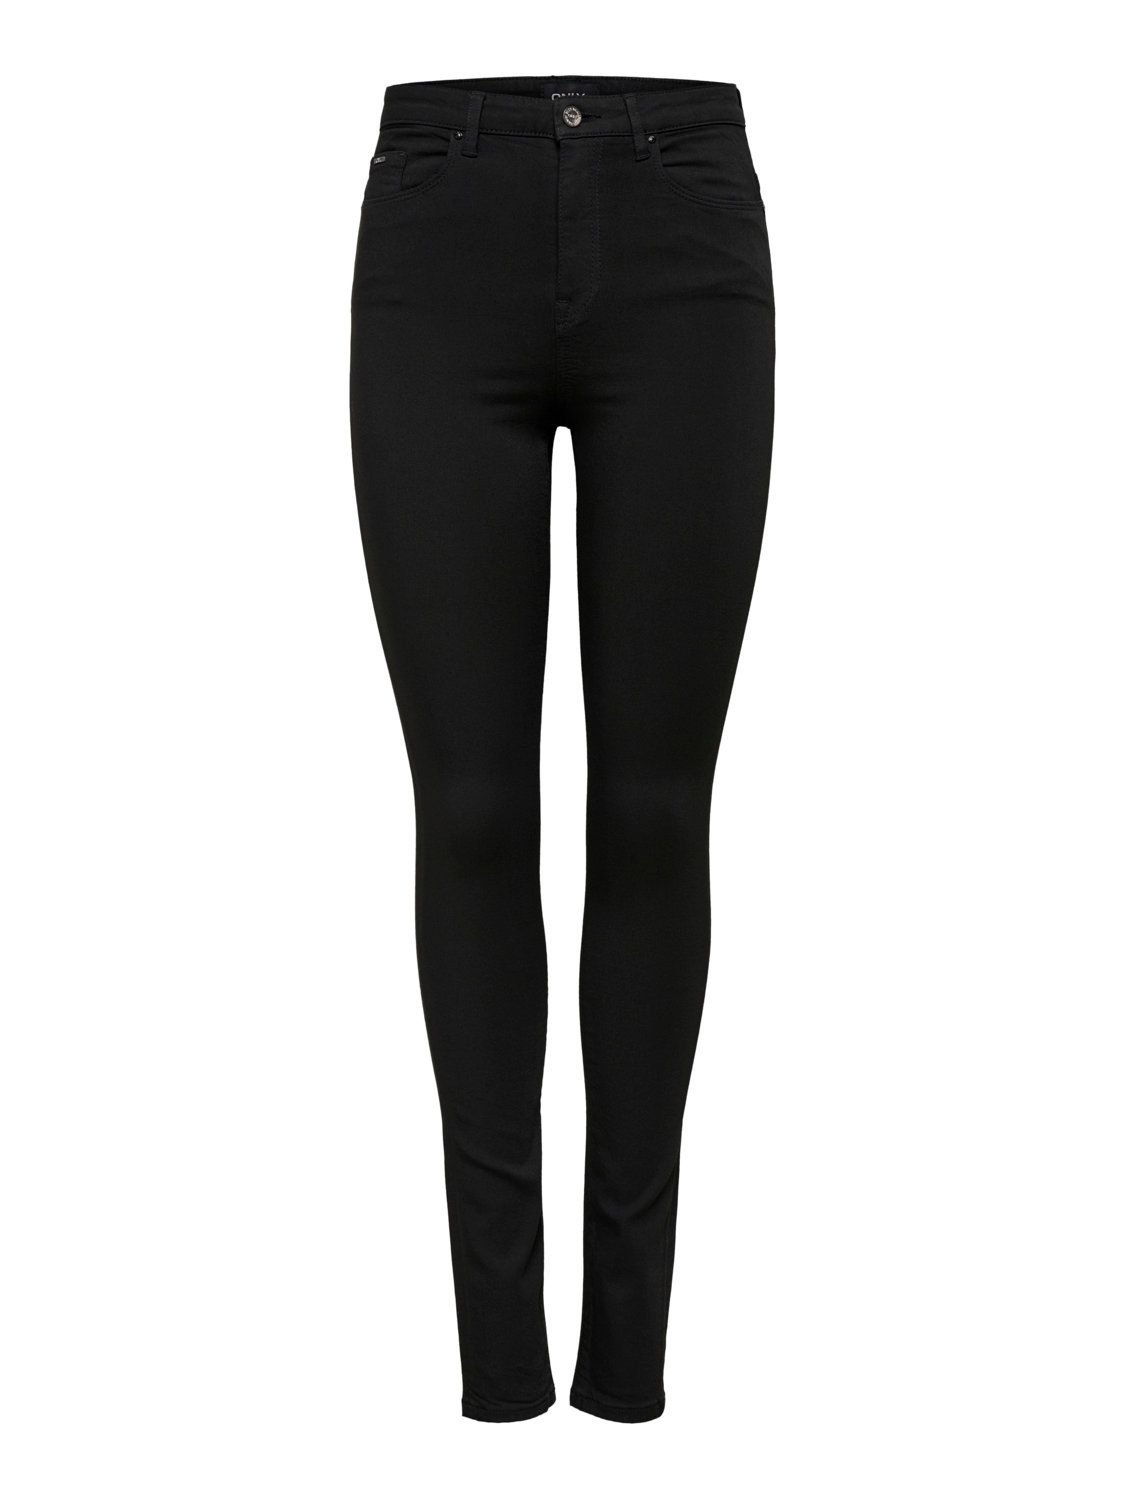 In-Mood Forever Black Jeans